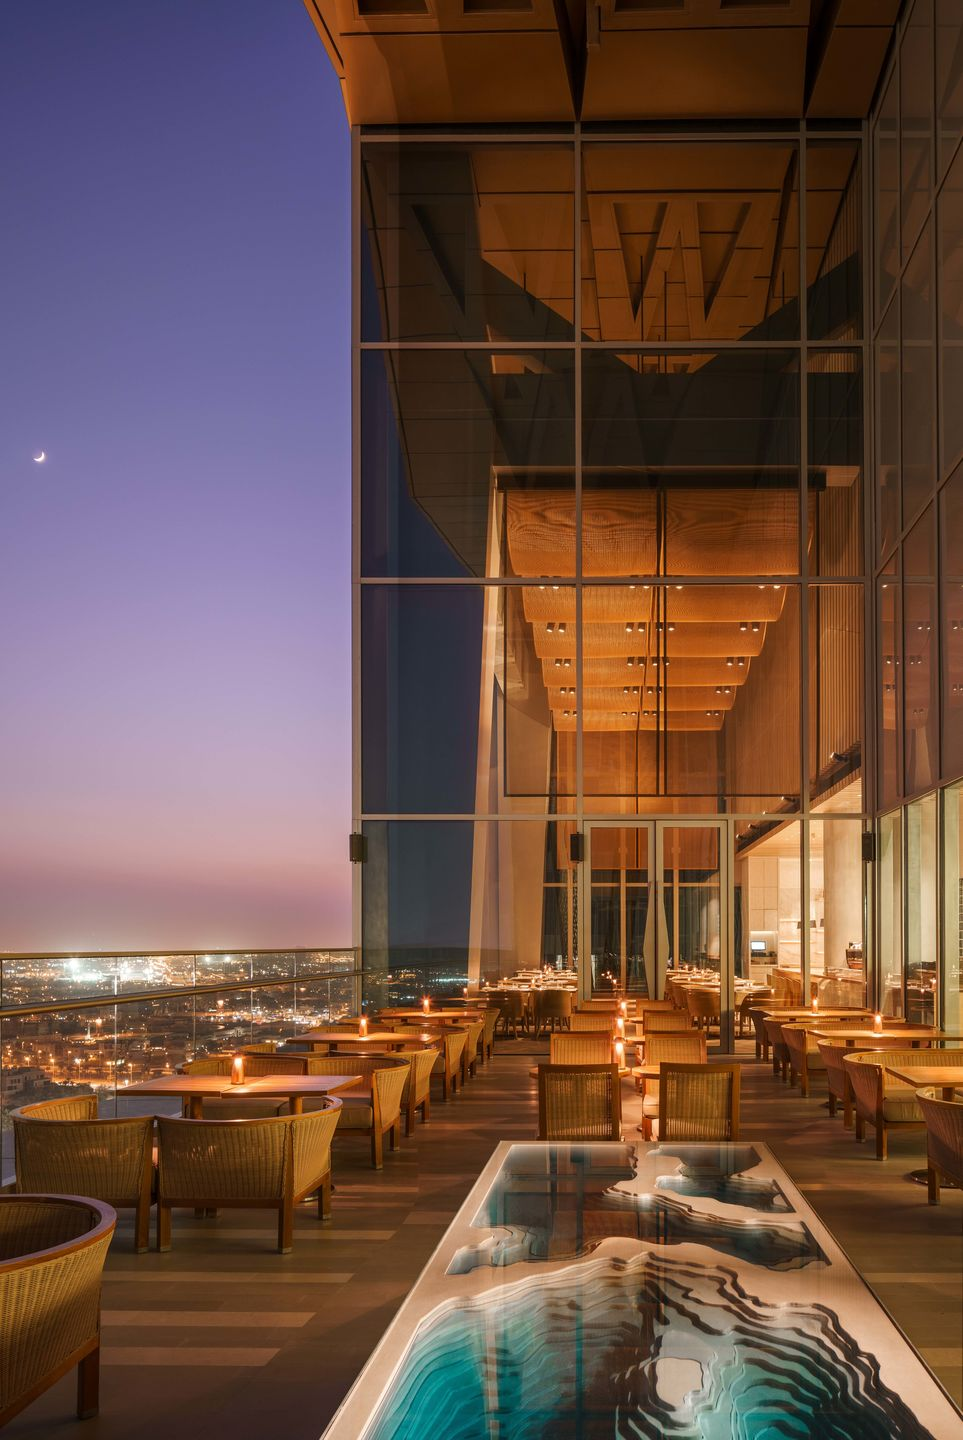 Sintoho Restaurant at Four Seasons Hotel, Kuwait